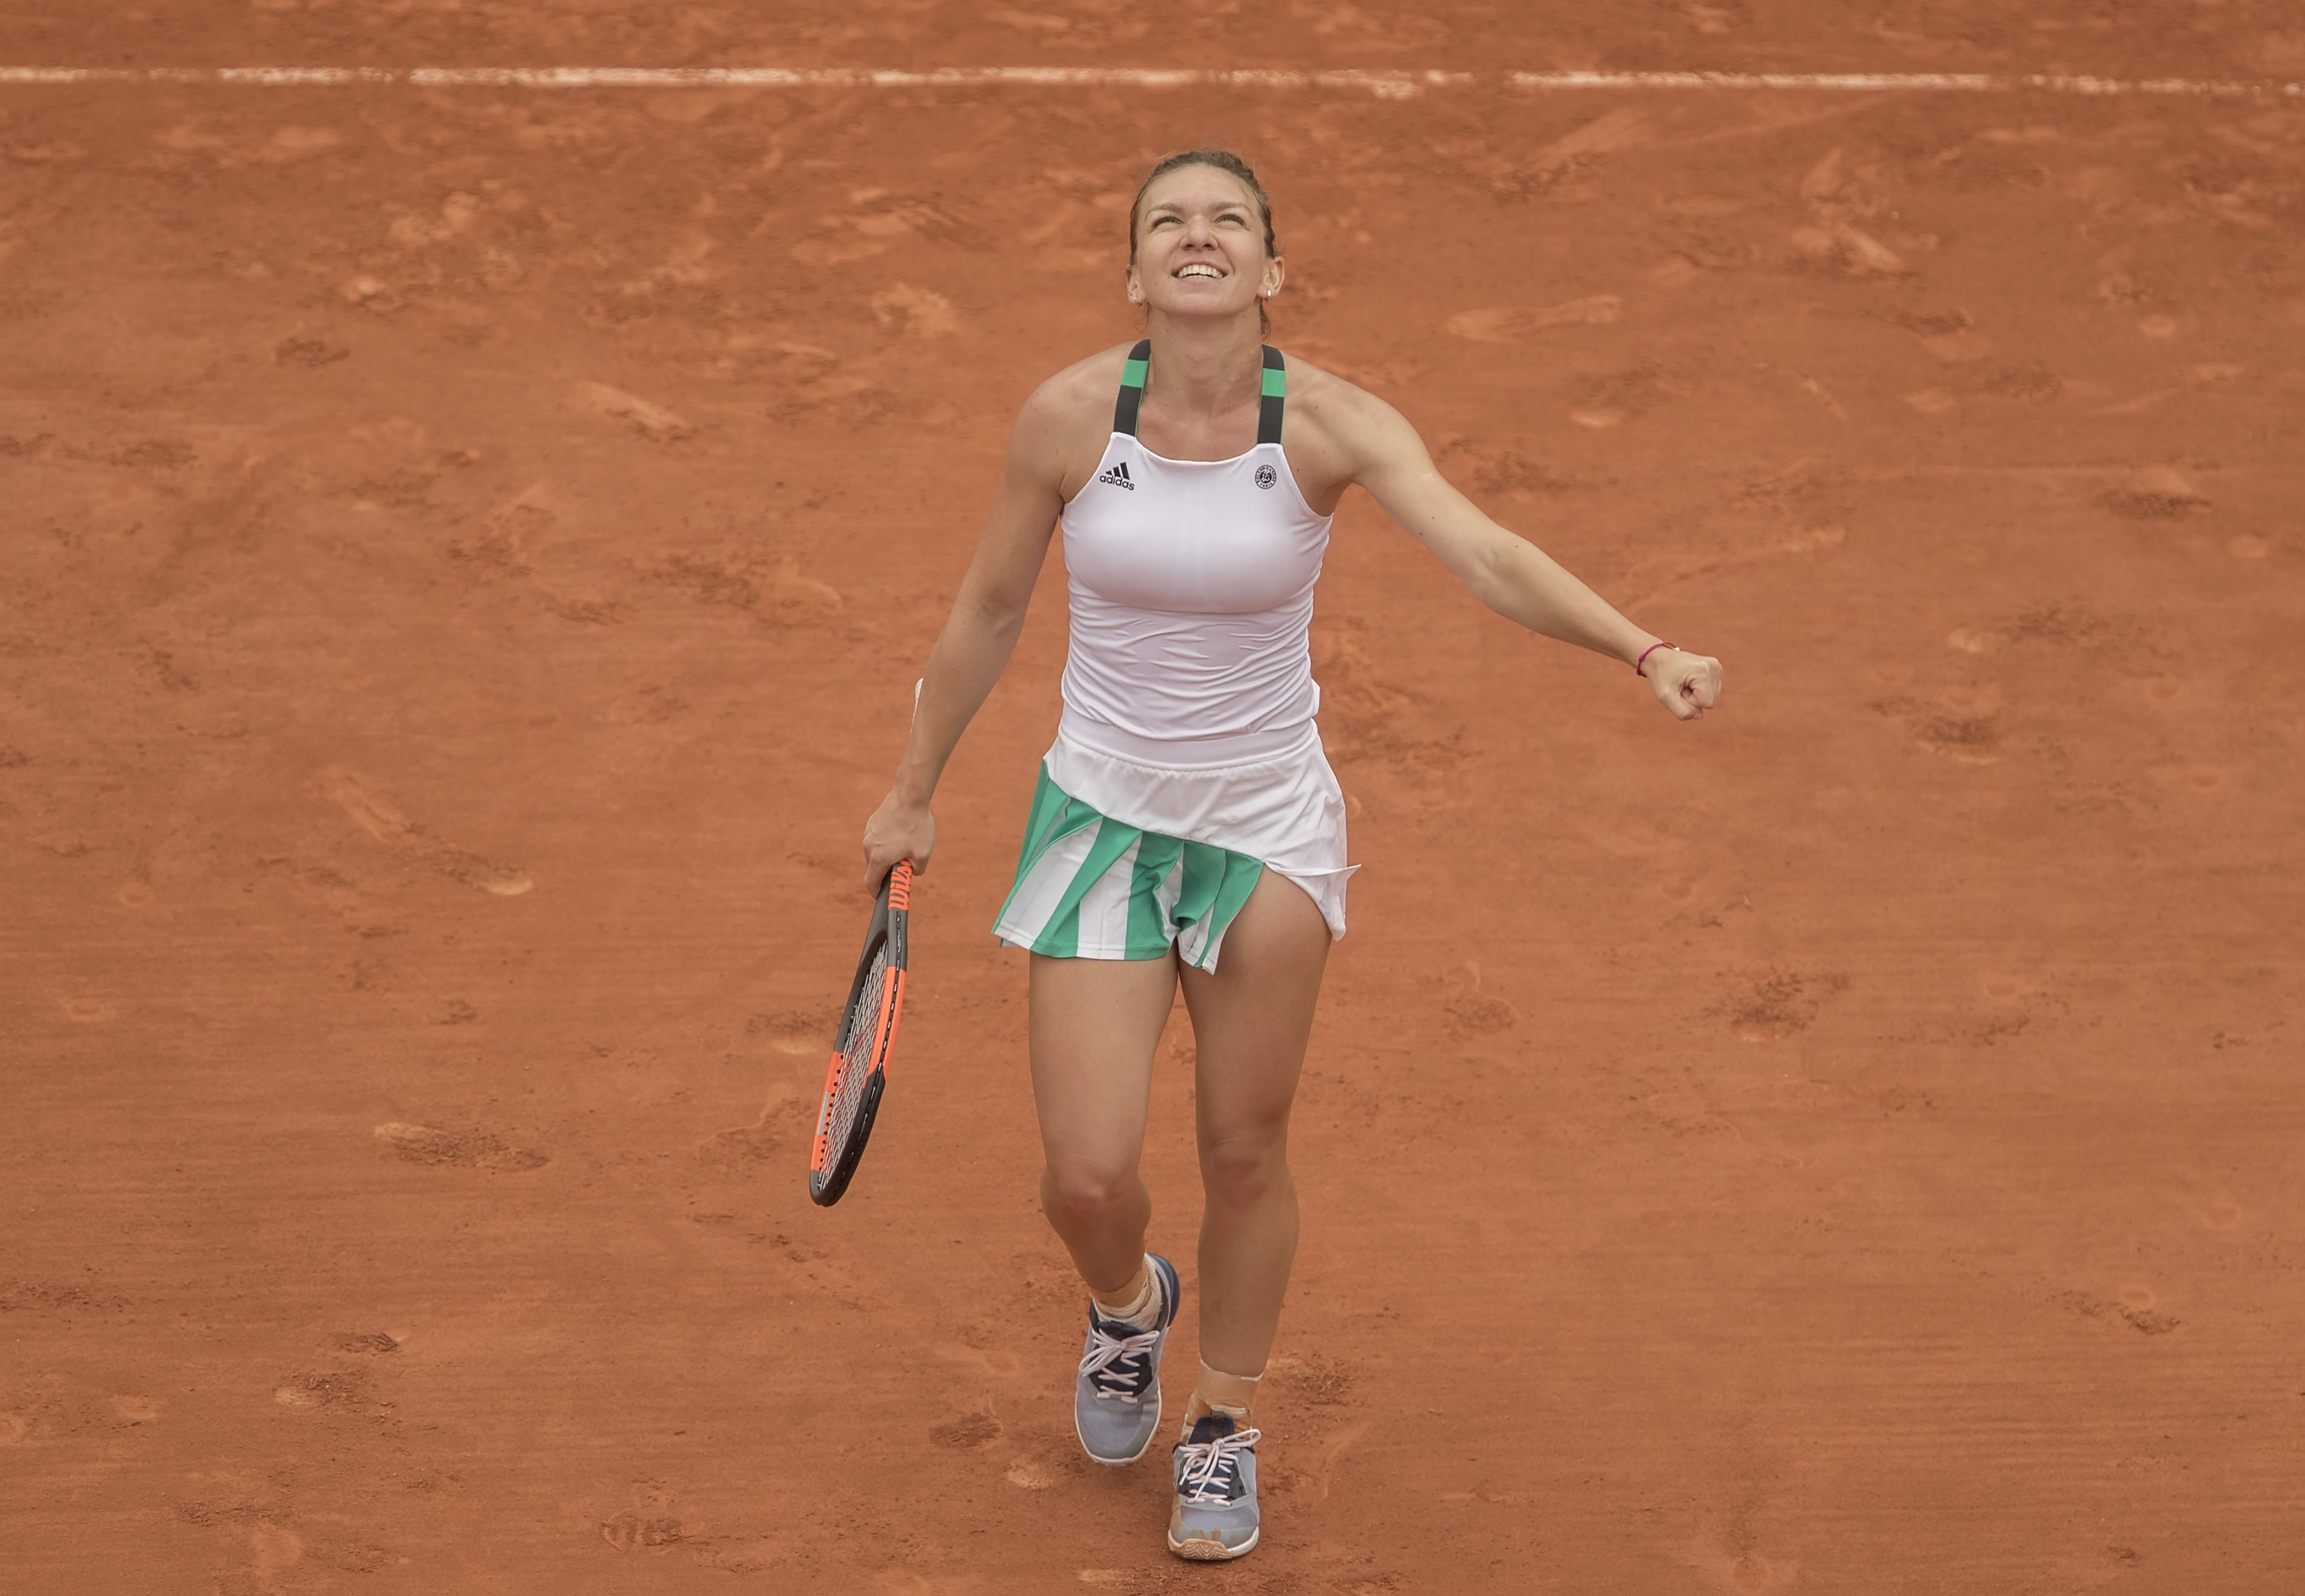 french open - photo #30